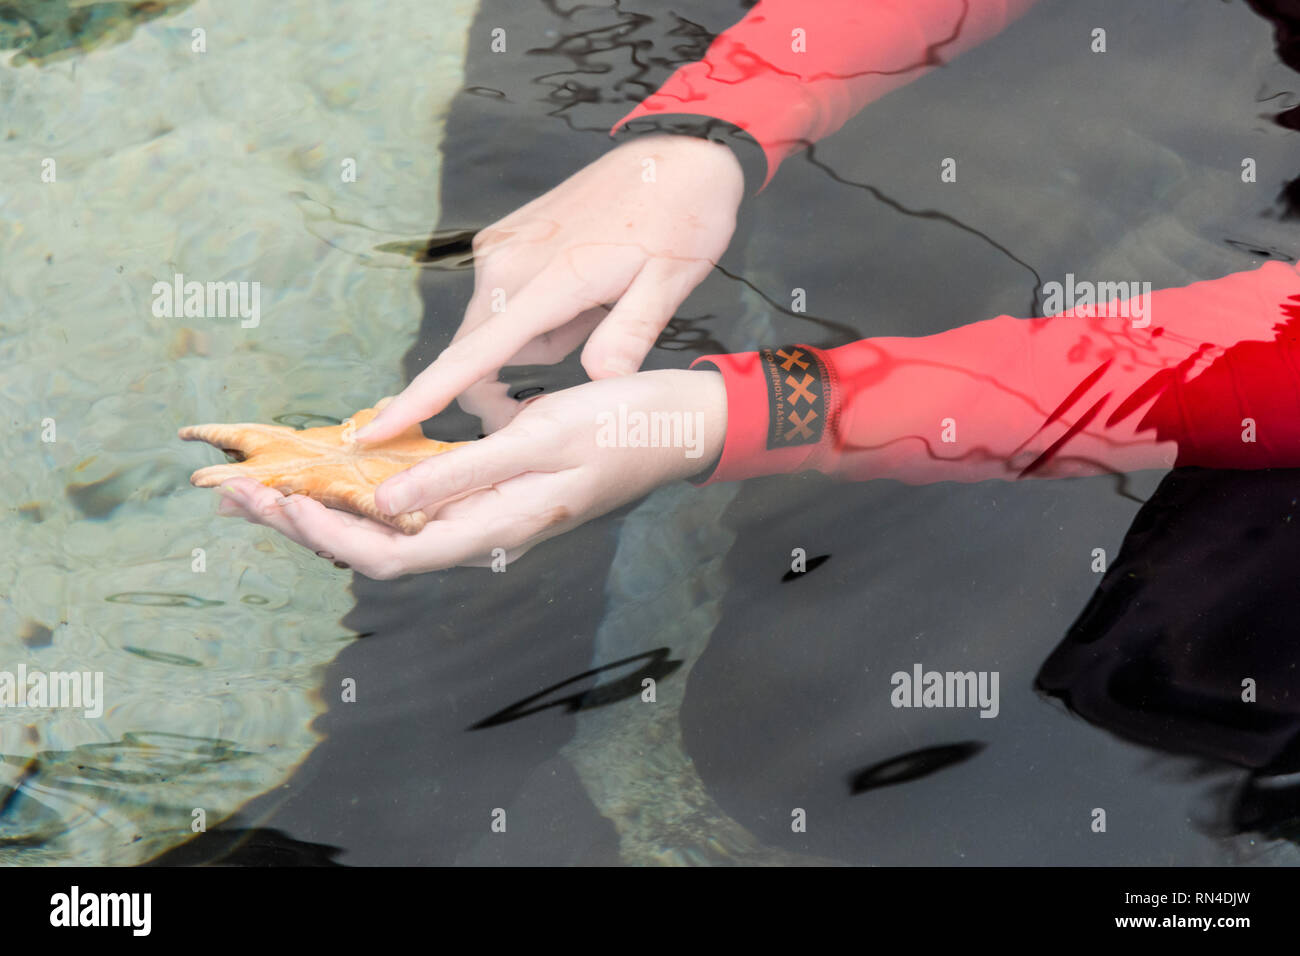 AQWA staff member shows the underneath of a starfish in the touch pool at The Aquarium Of Western Australia, Hillarys Boat Harbour, Western Australia - Stock Image